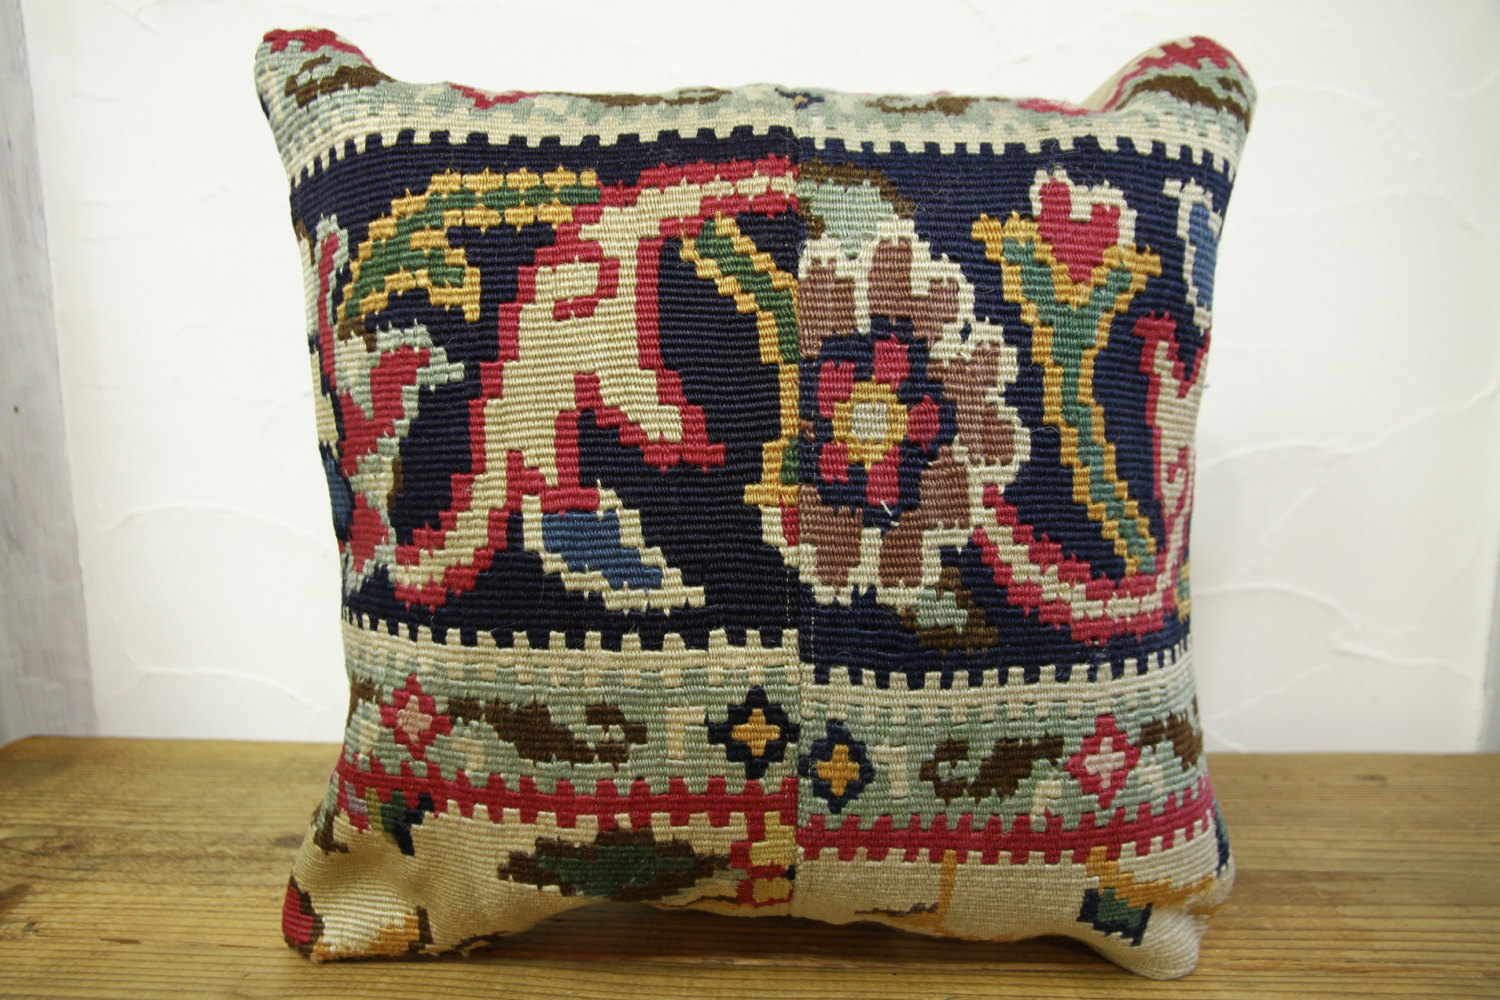 Kilim Pillows |16x16 | Decorative Pillows | 450 | Accent Pillows turkish pillow